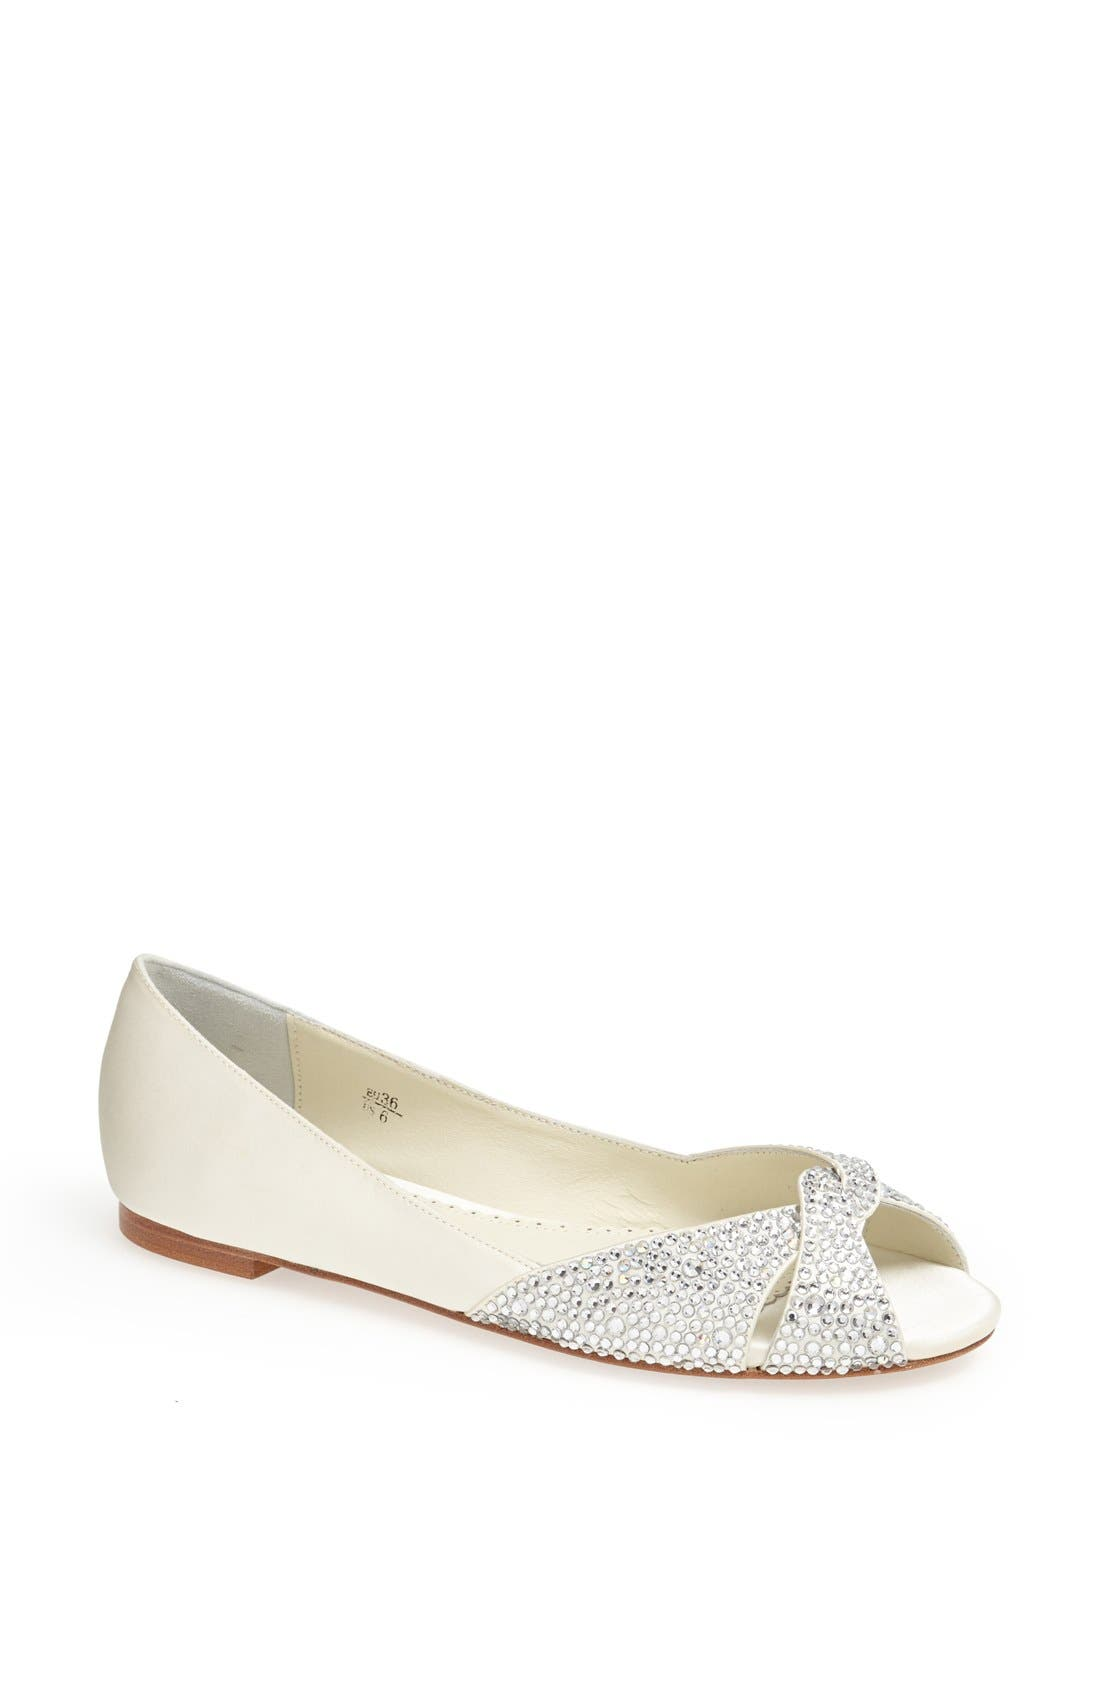 'Andie' Crystal Embellished Peep Toe Flat,                             Main thumbnail 1, color,                             900